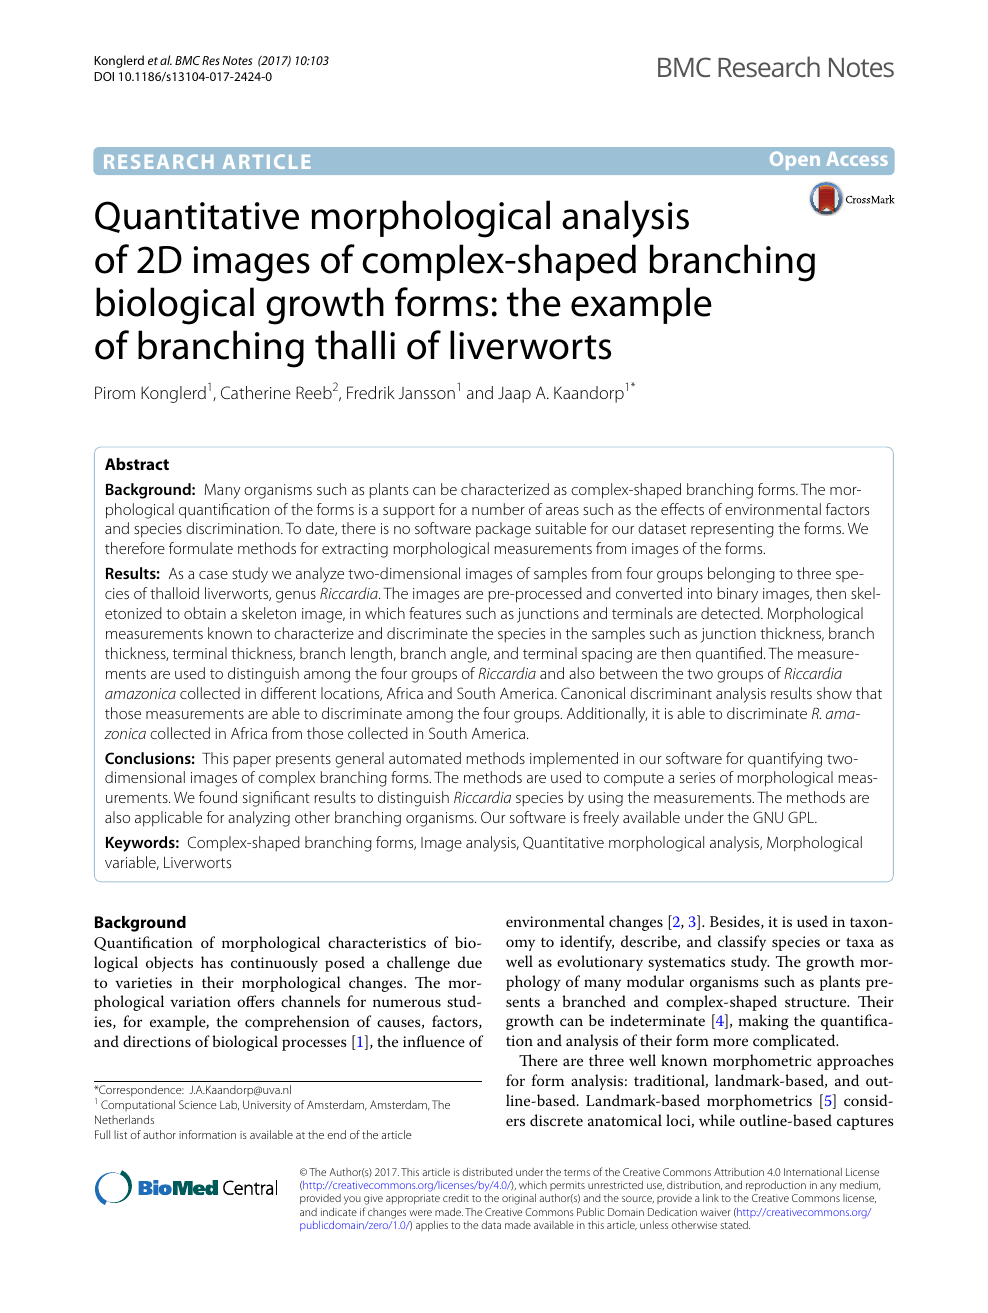 Quantitative morphological analysis of 2D images of complex-shaped